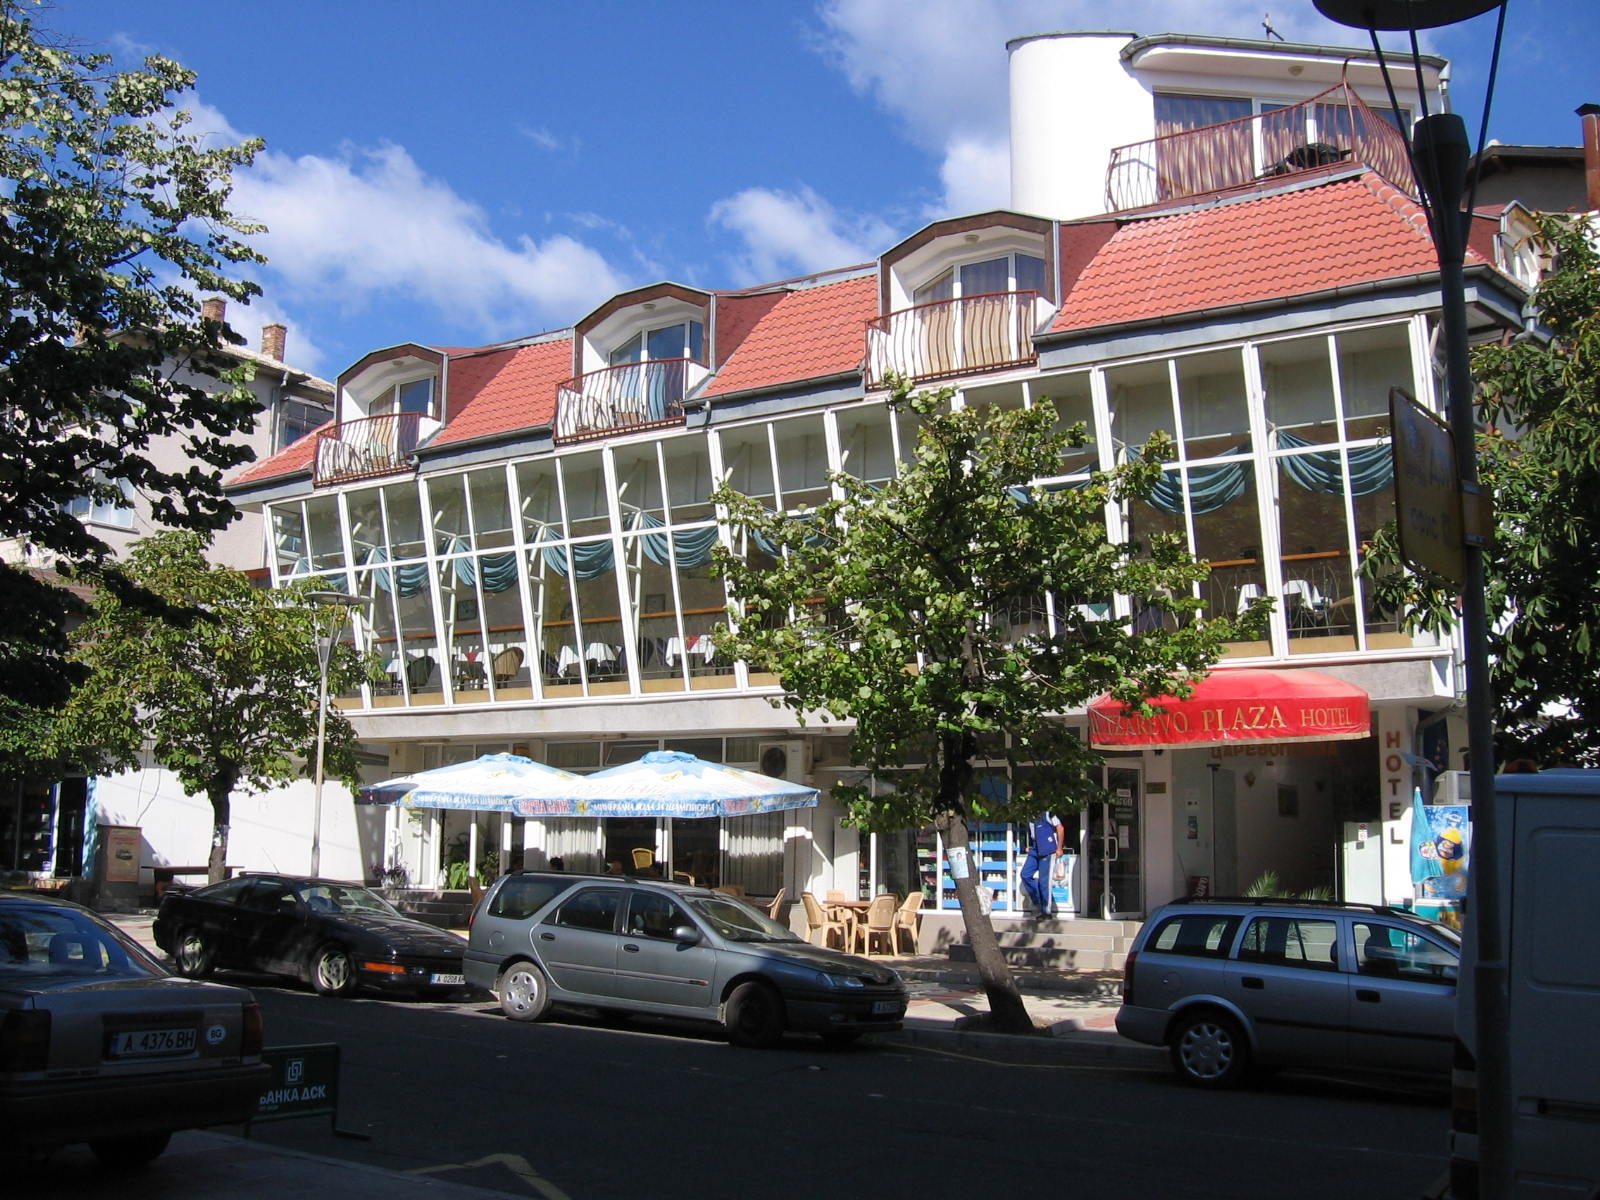 Hotel Tzarevo Plaza in centre of town (Photo: pernica.biz)